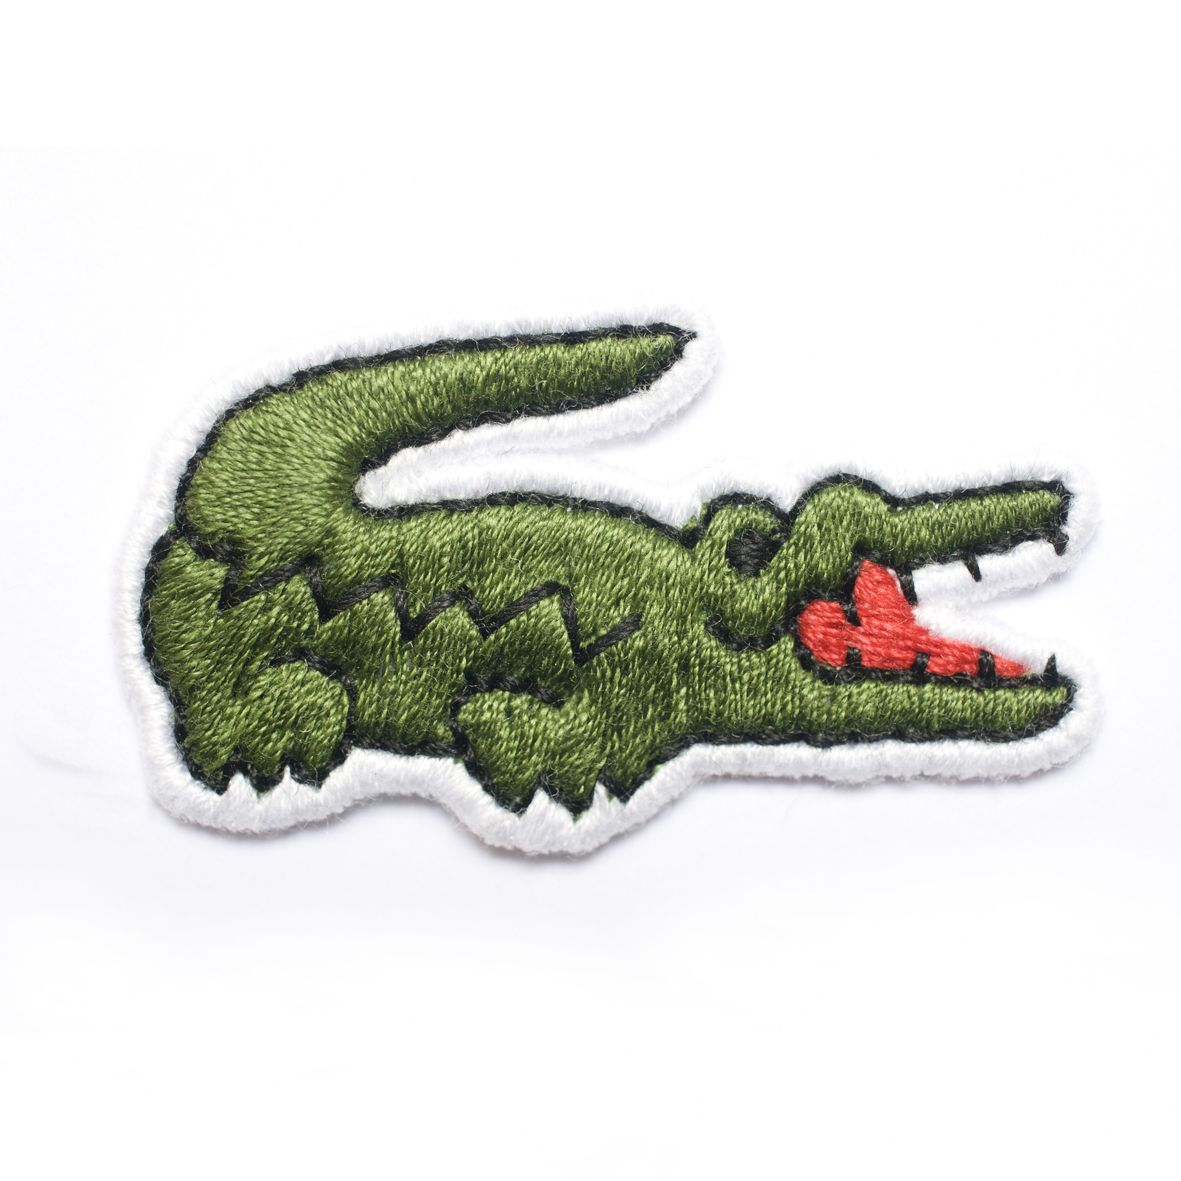 Lacoste logo iron on patch crocodile e074 by happysupply on etsy lacoste logo iron on patch crocodile e074 by happysupply on etsy 270 patterns pinterest lacoste crocodile and patches buycottarizona Image collections